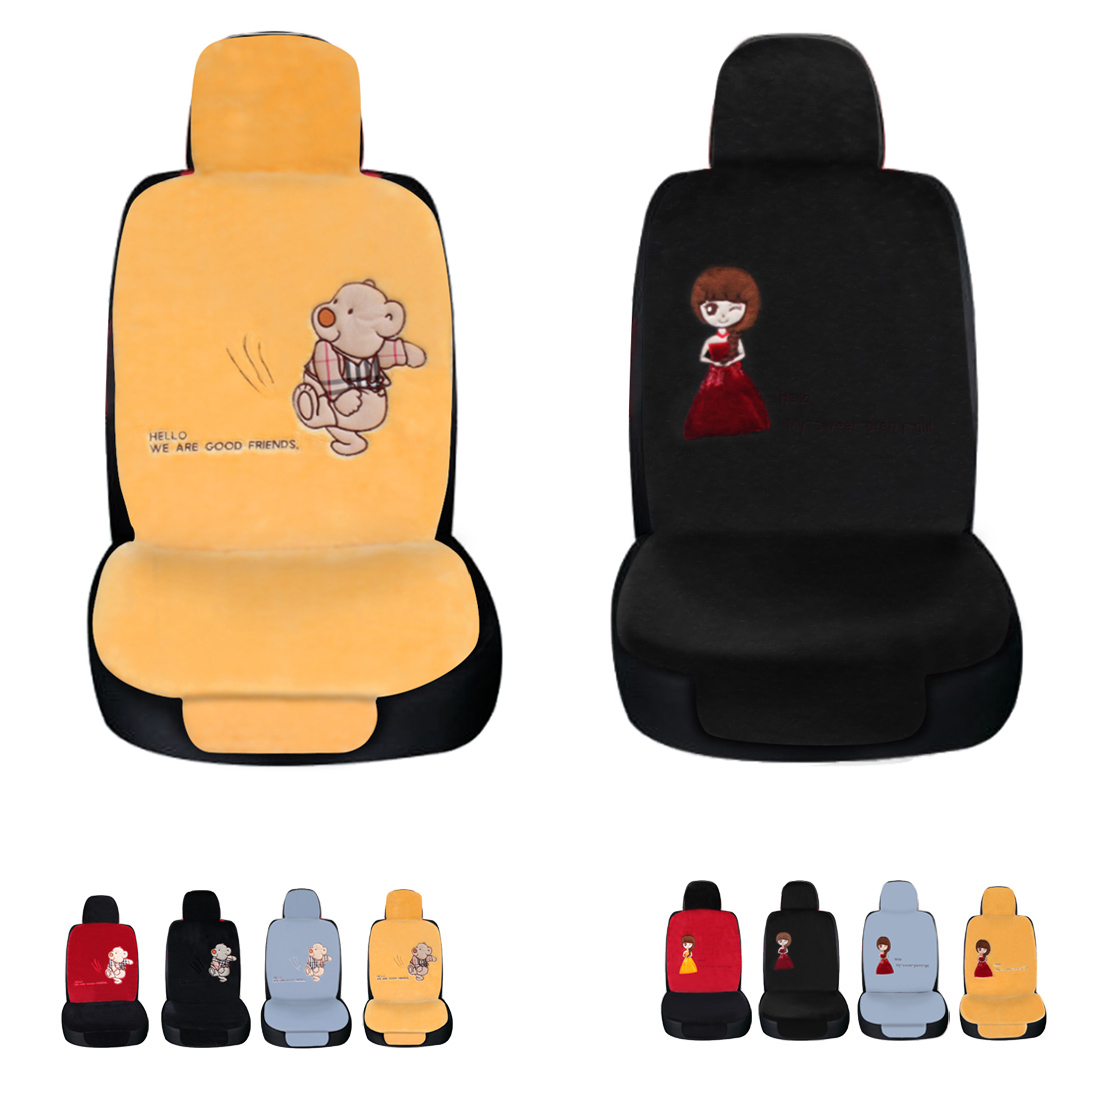 Dewtreetali Single Front Car Seat Cover Car Seat Cushion Bear Girl Winter Plush Cushion Car Seat Covers for Auto Van Truck crystal lux бра crystal lux creek ap1